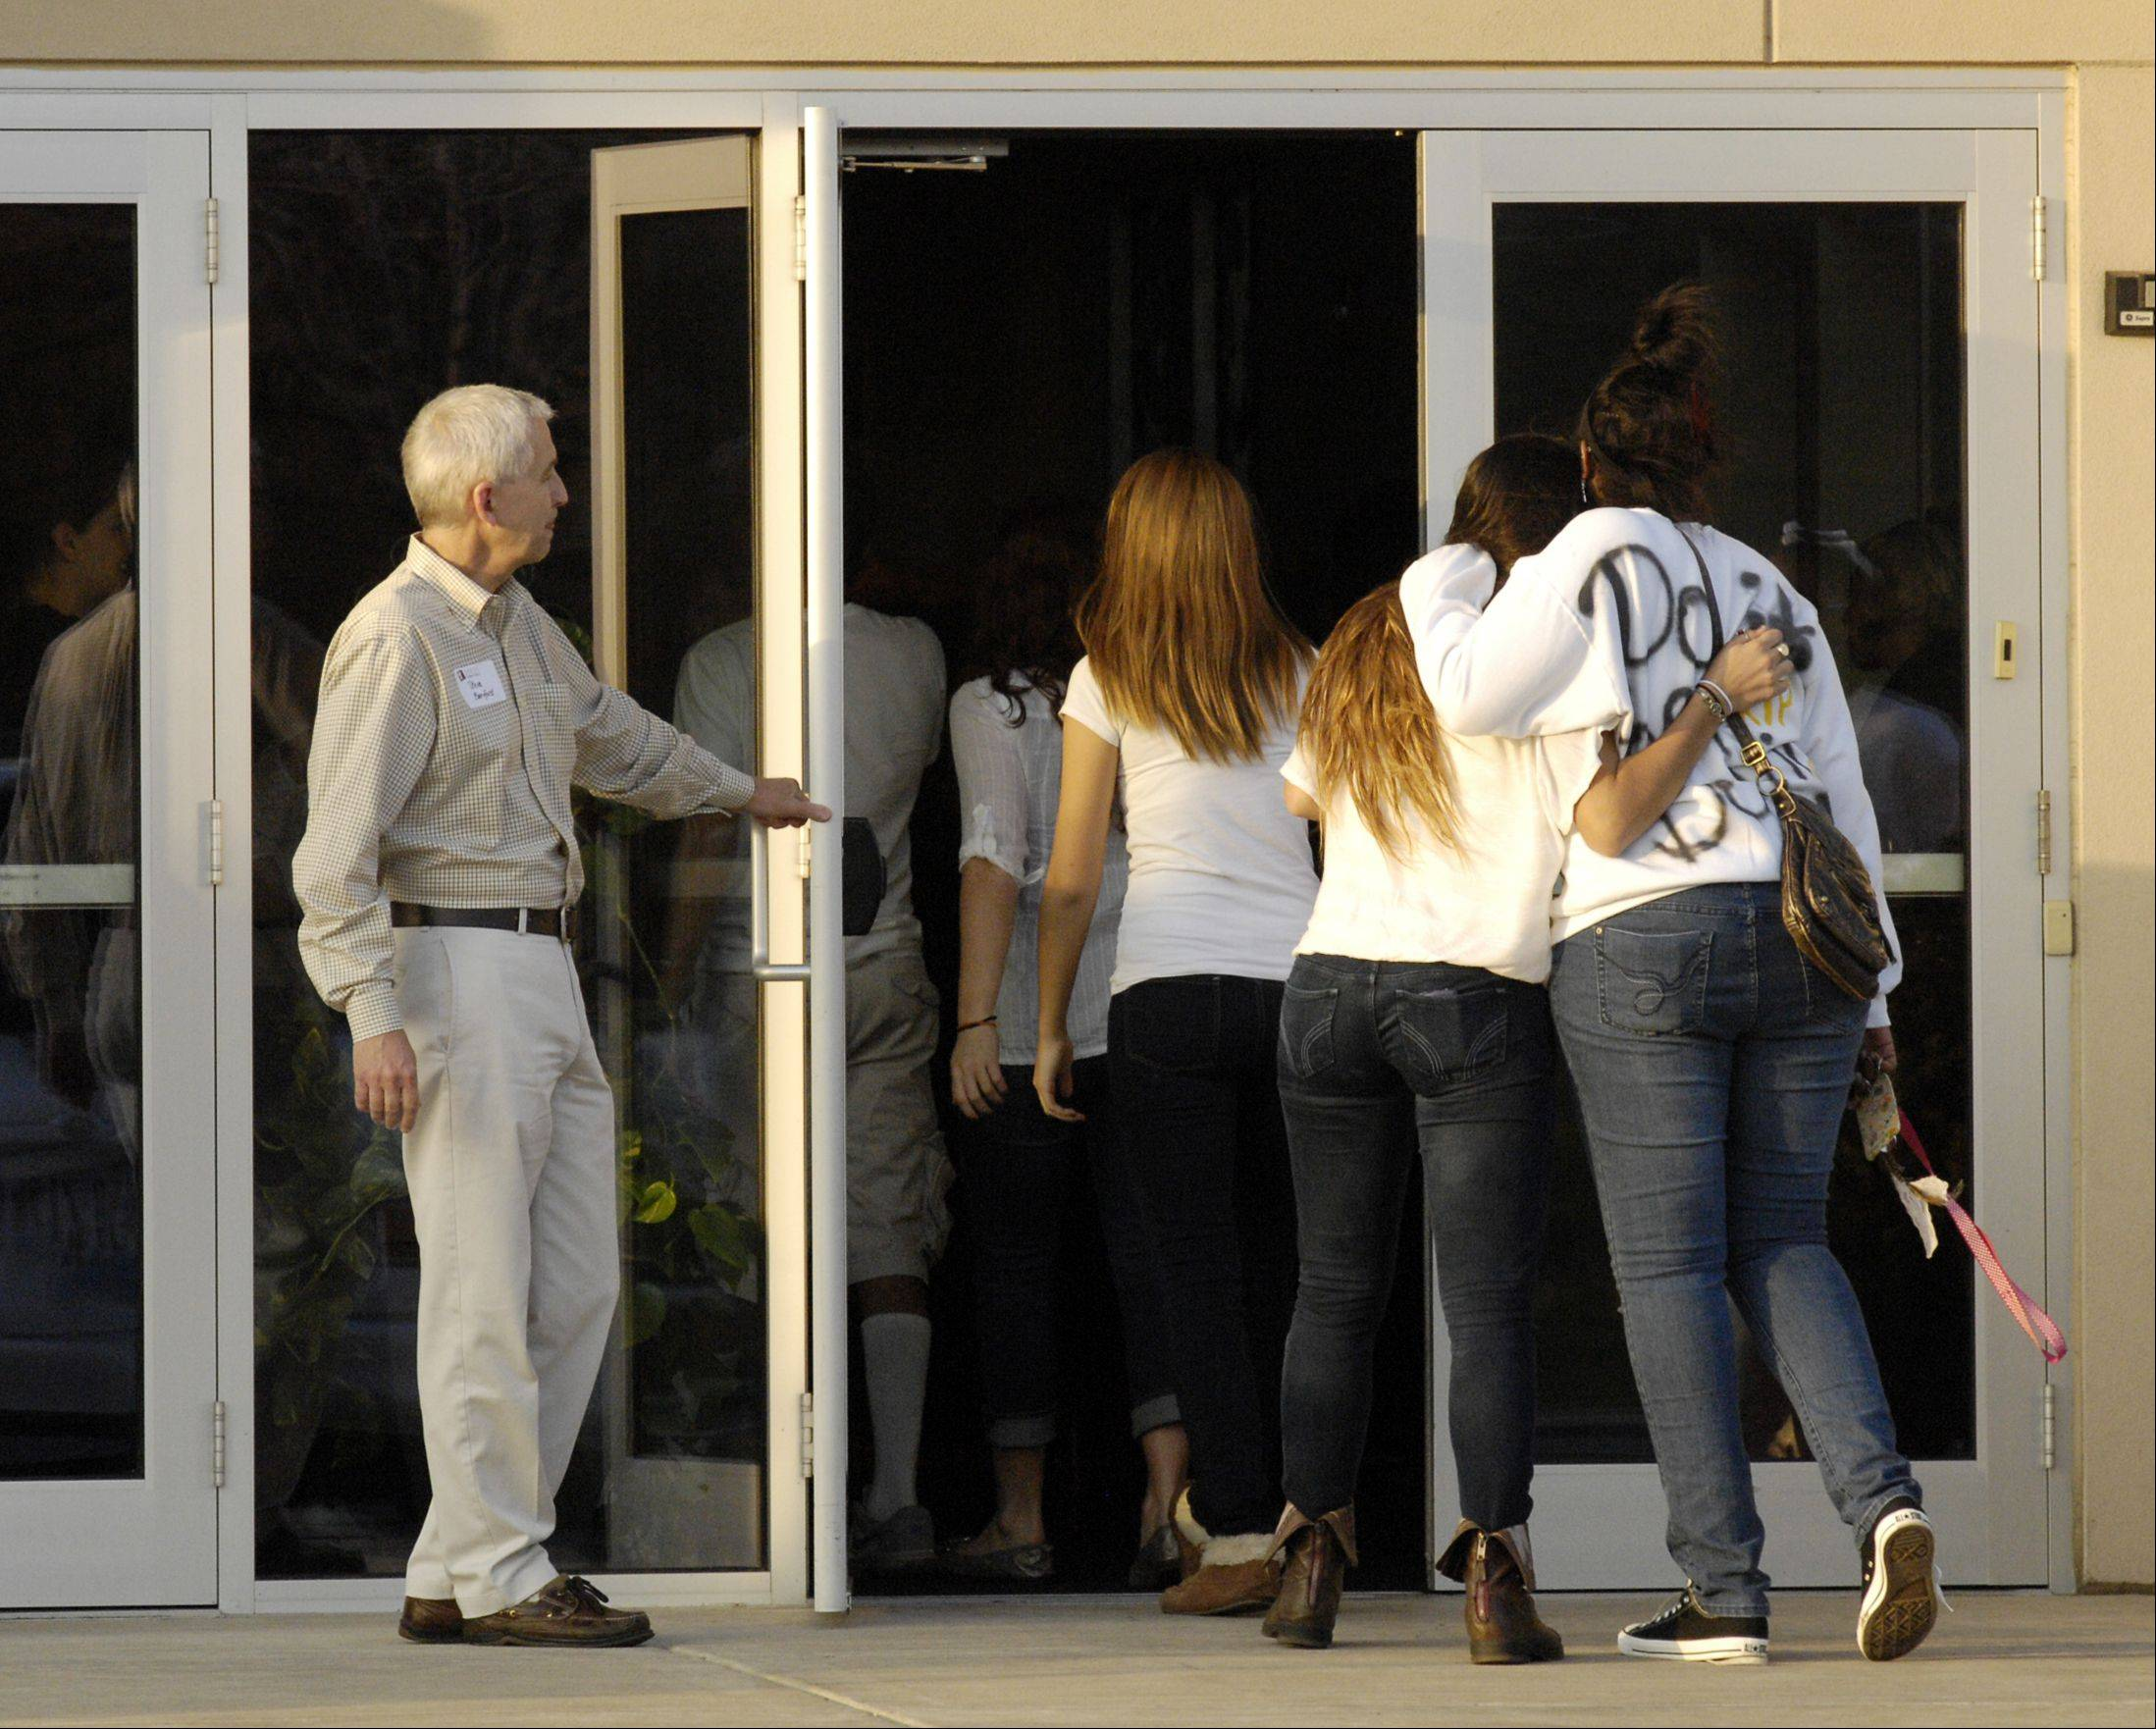 Mourners comfort each other as they enter Faith Lutheran Church in Aurora for a prayer service to remember Devin Meadows, who was killed in an auto accident Tuesday morning.